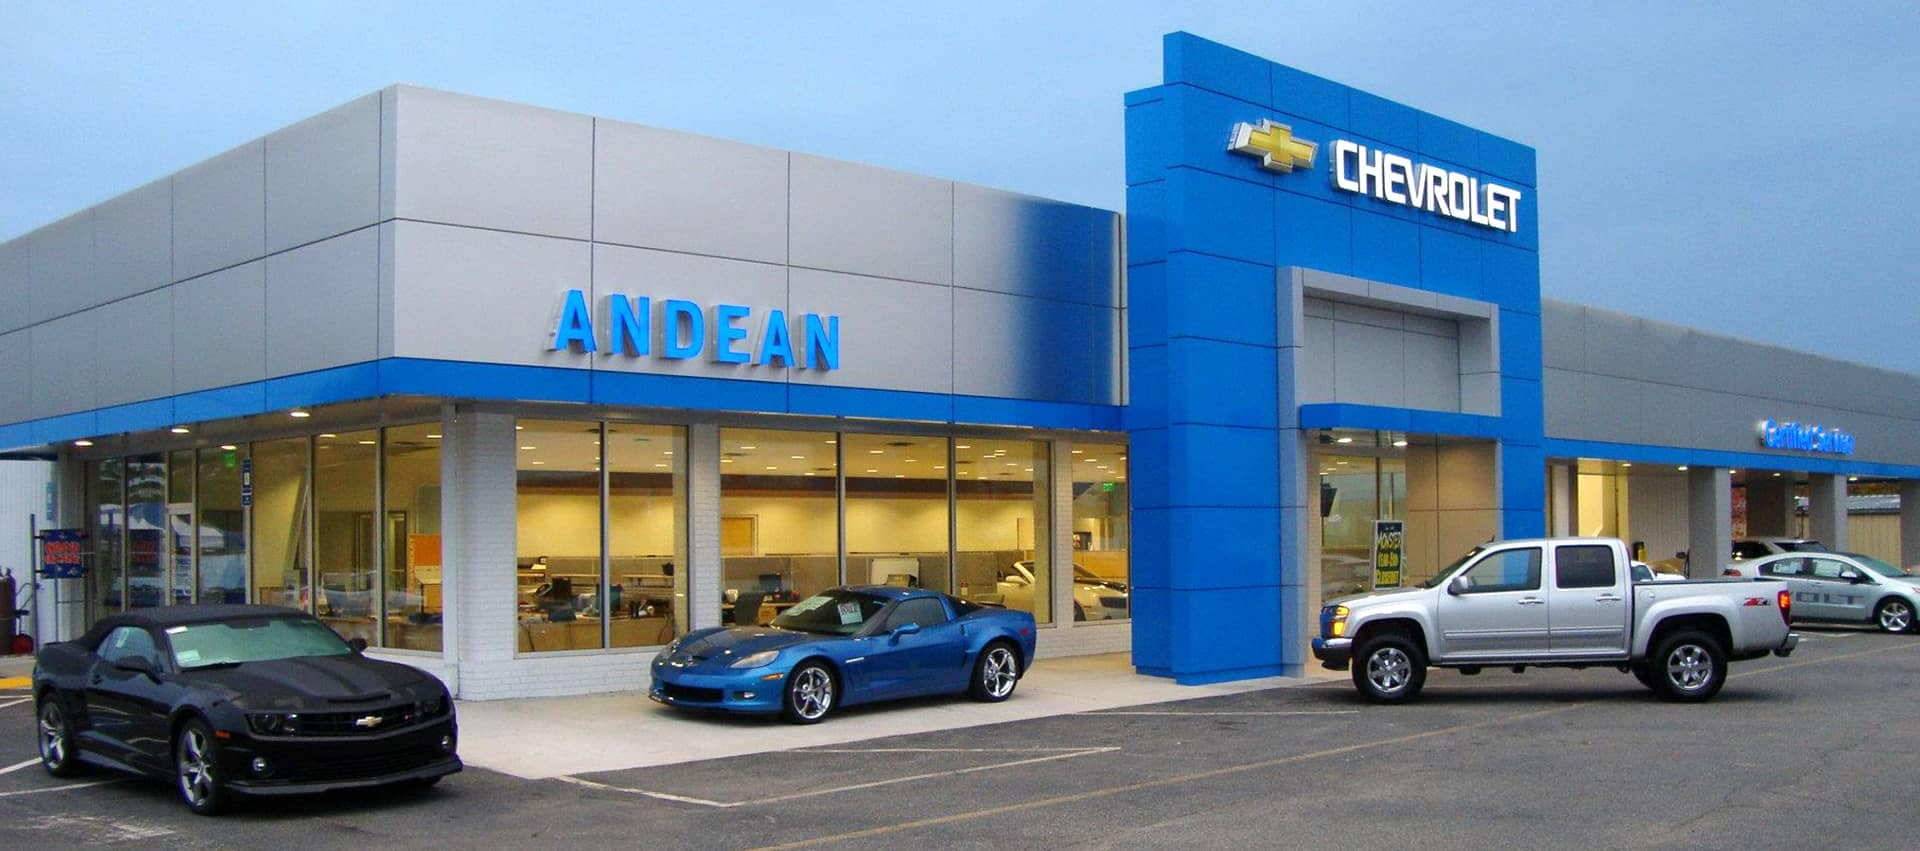 Andean Chevrolet Georgia New Used Car Dealer In Cumming